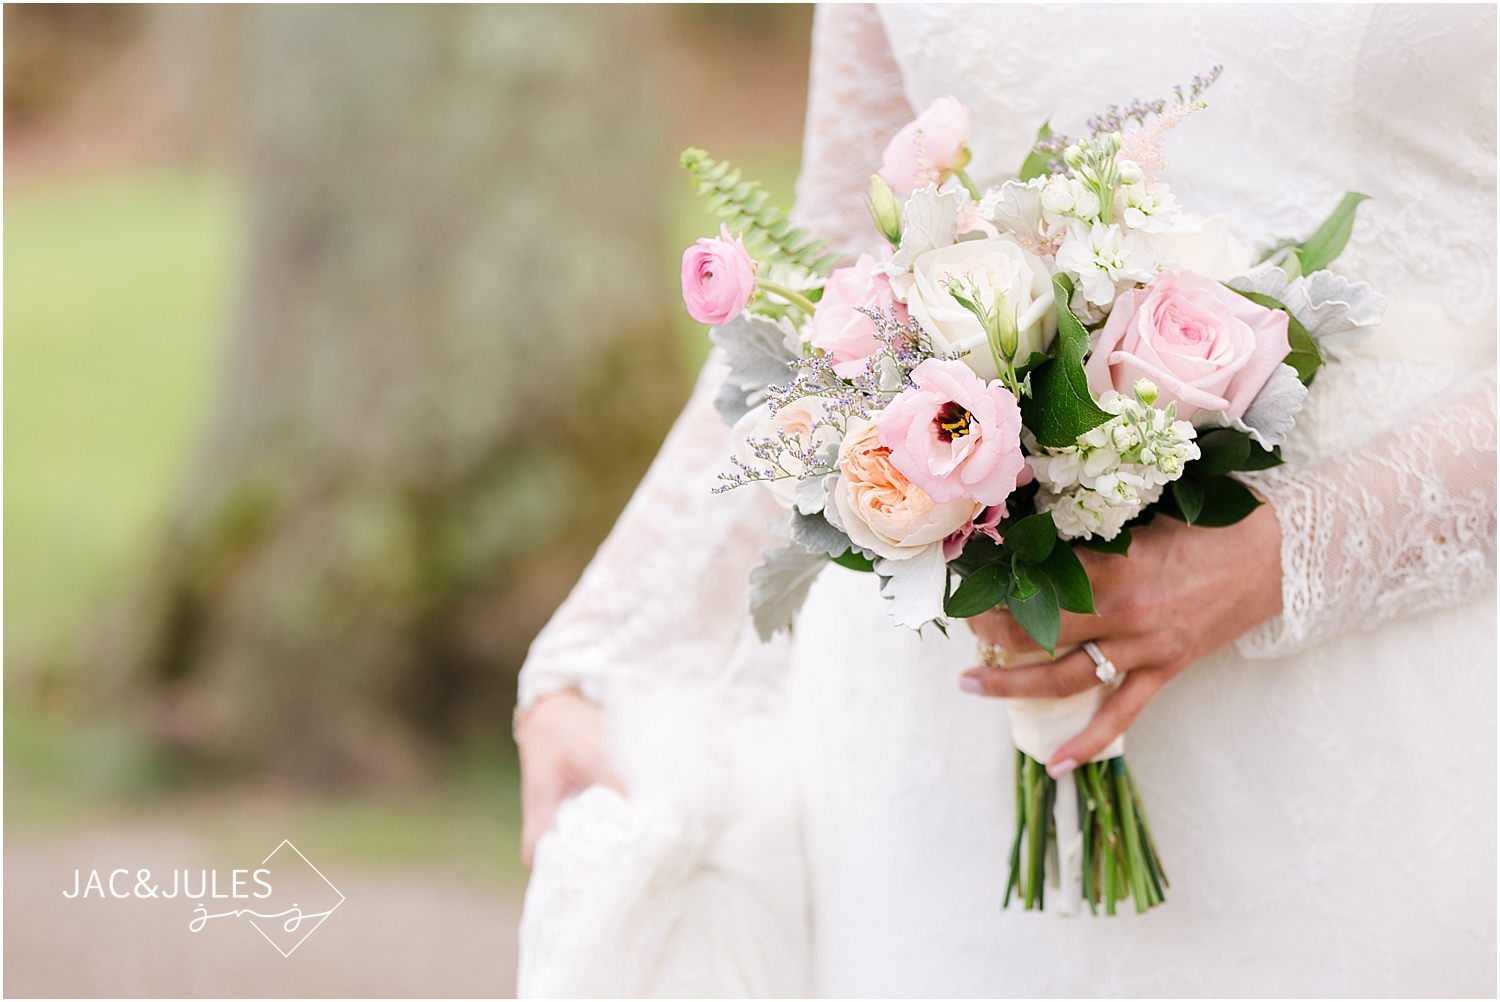 jacnjules photographs wedding bouquet from Flowers by Melinda in Lavallette, NJ